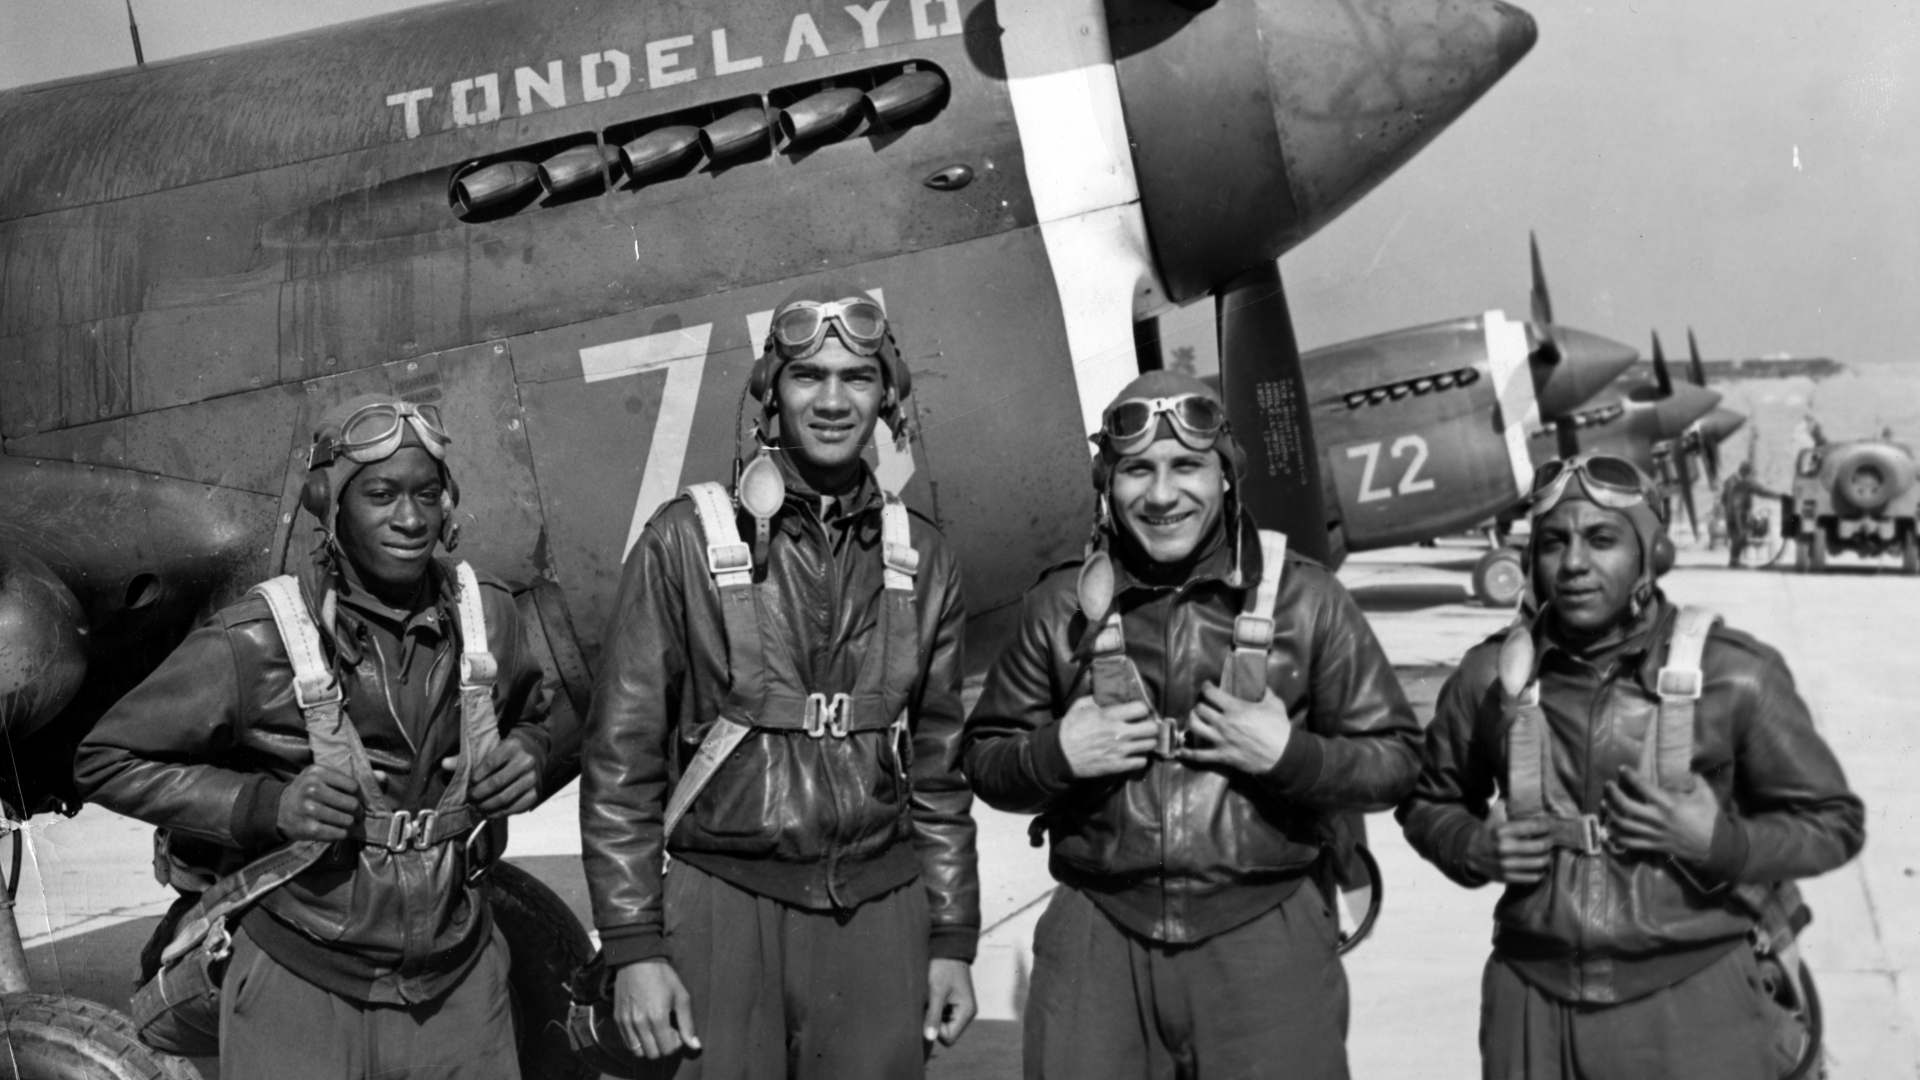 Members of the 1942 graduating class at Tuskegee Army Flying School: Alwayne Dunlap, Lawrence E Dickson, Wilmeth W Sidat Singh and Elmer L Gordon. (Credit: Afro American Newspapers/Gado/Getty Images)